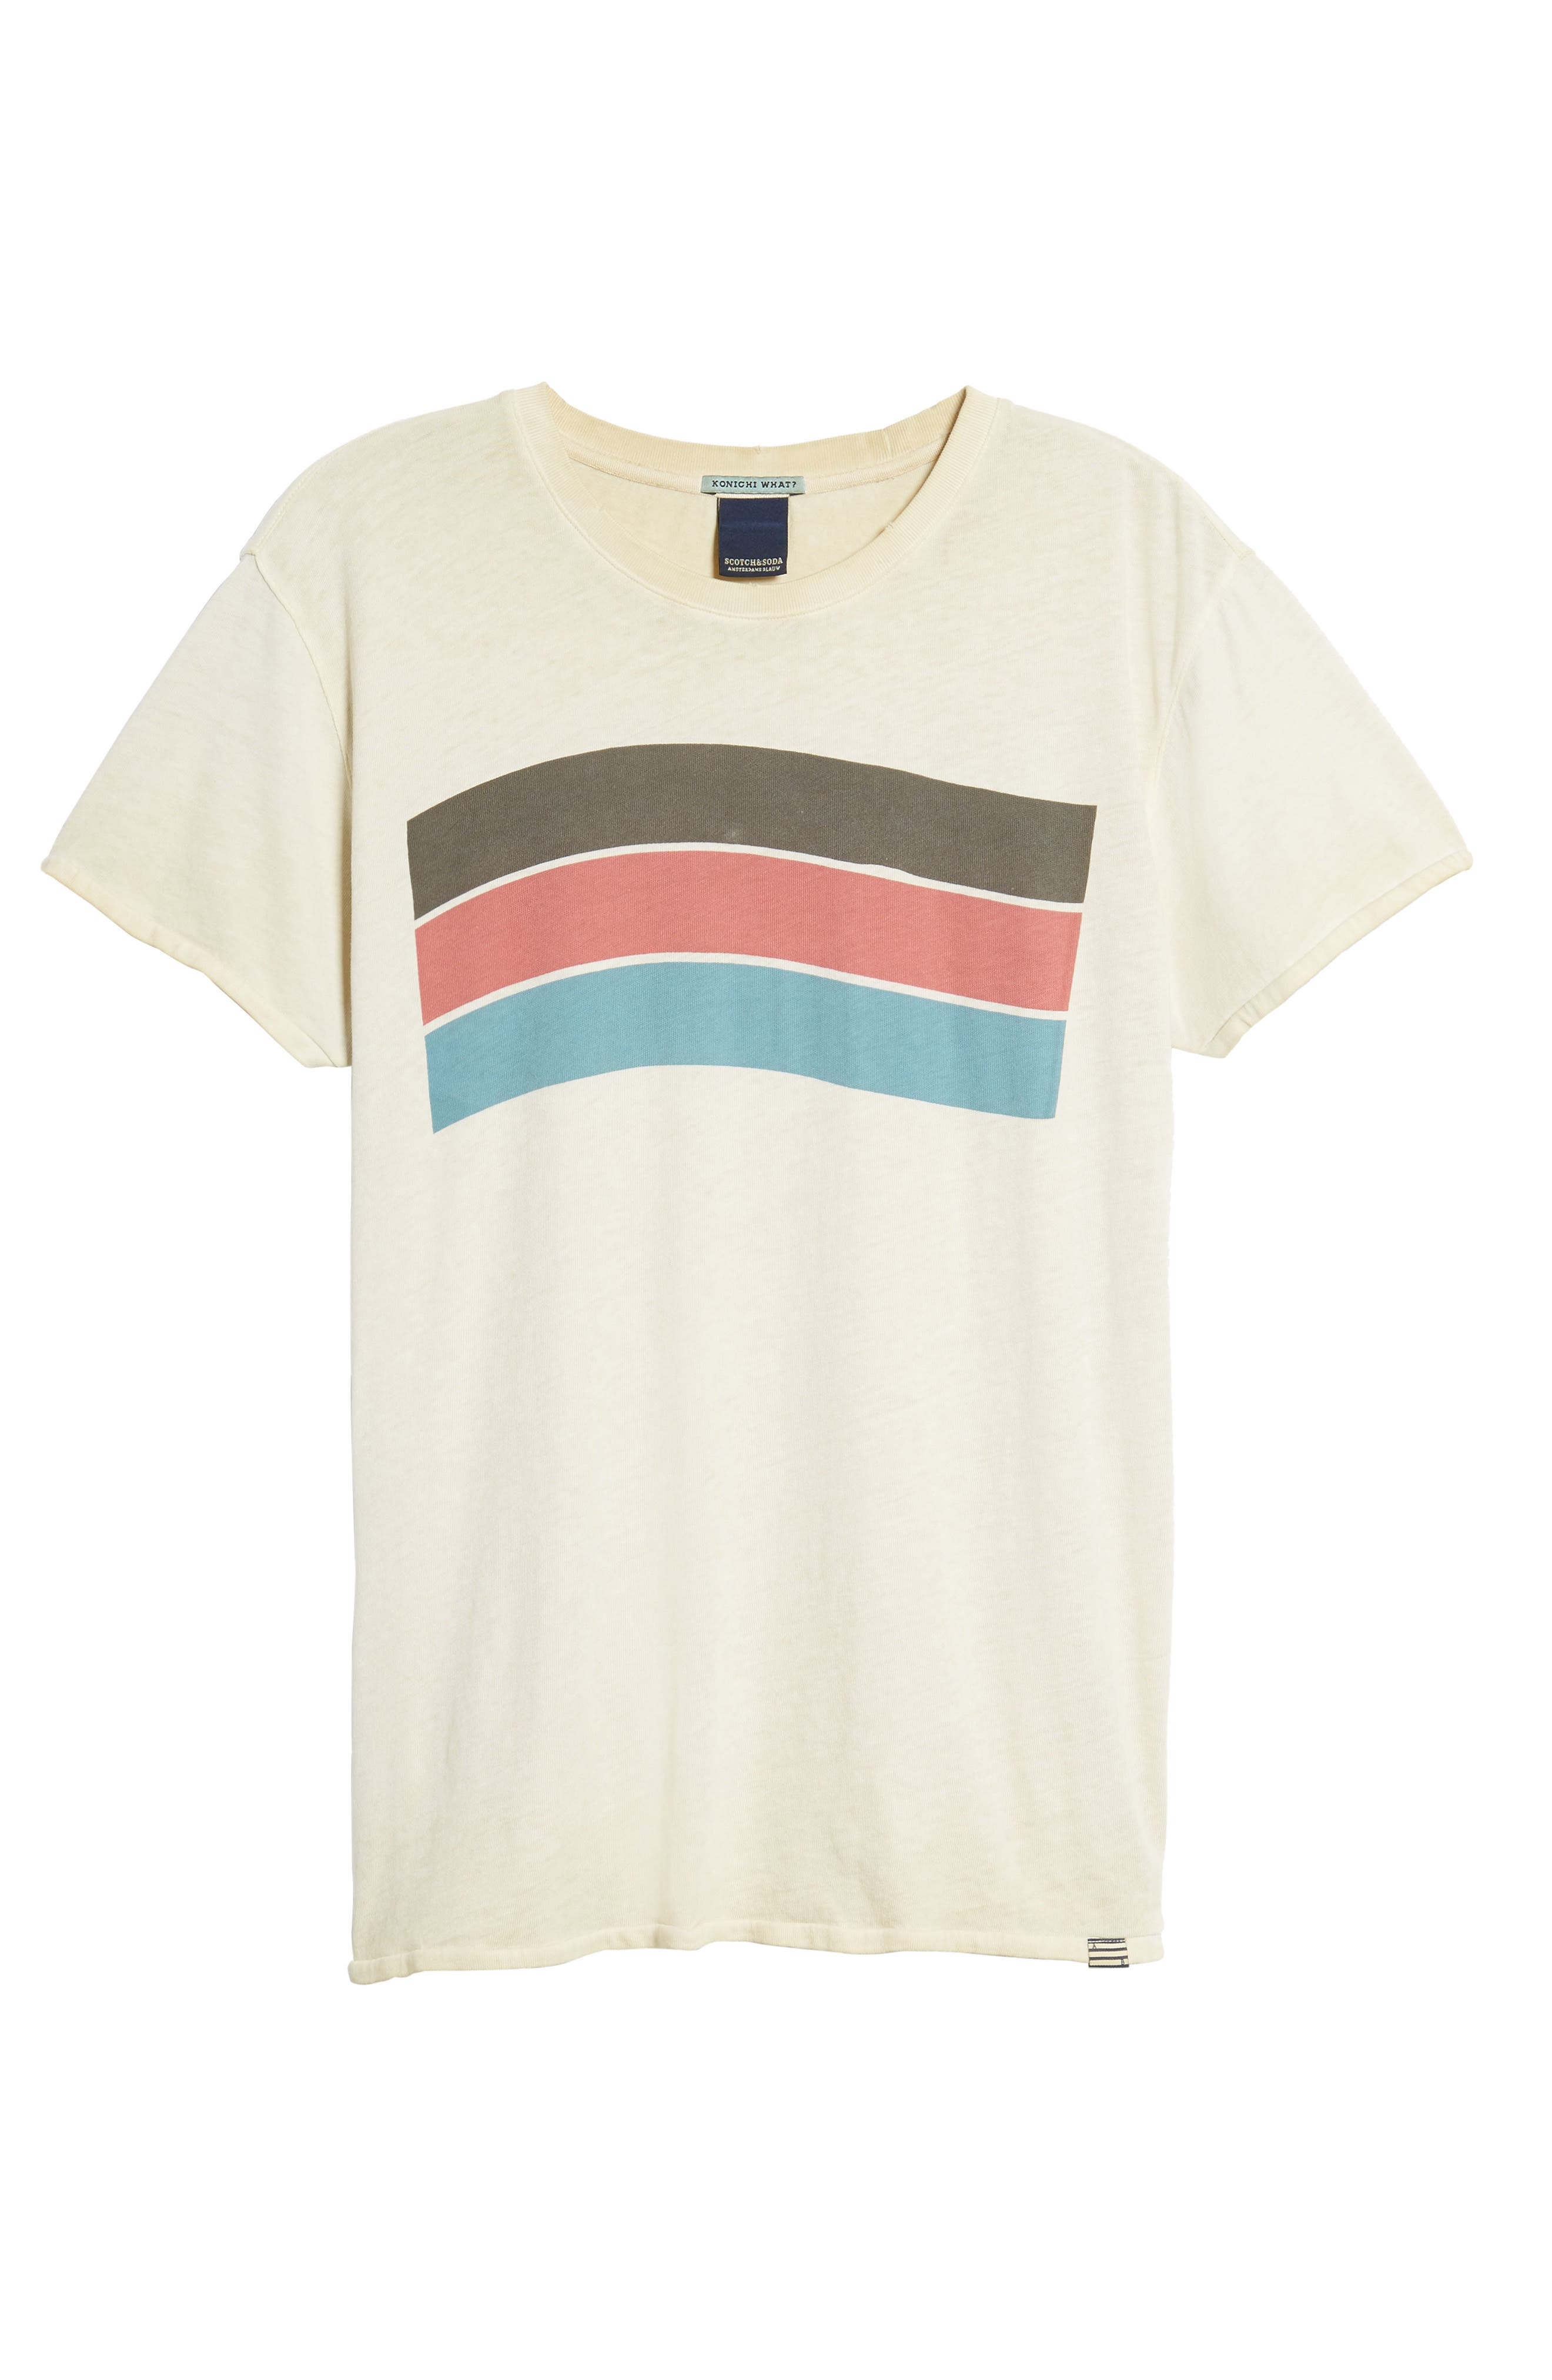 Washed Graphic T-Shirt,                             Alternate thumbnail 6, color,                             260